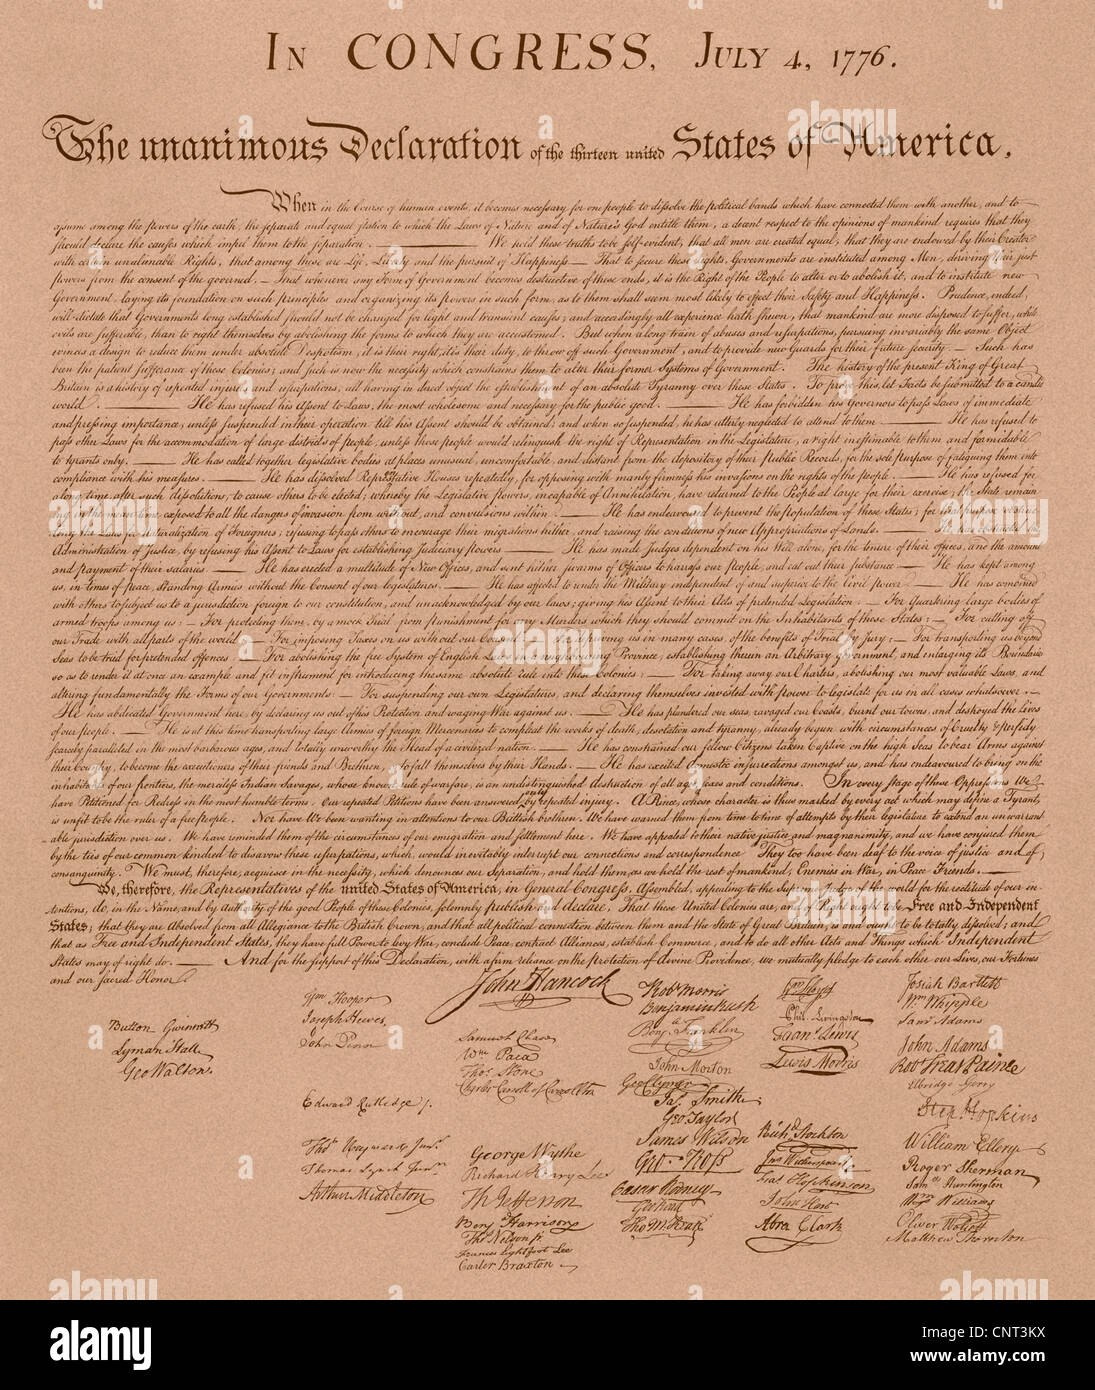 Vintage copy of The United States Declaration of Independence. - Stock Image